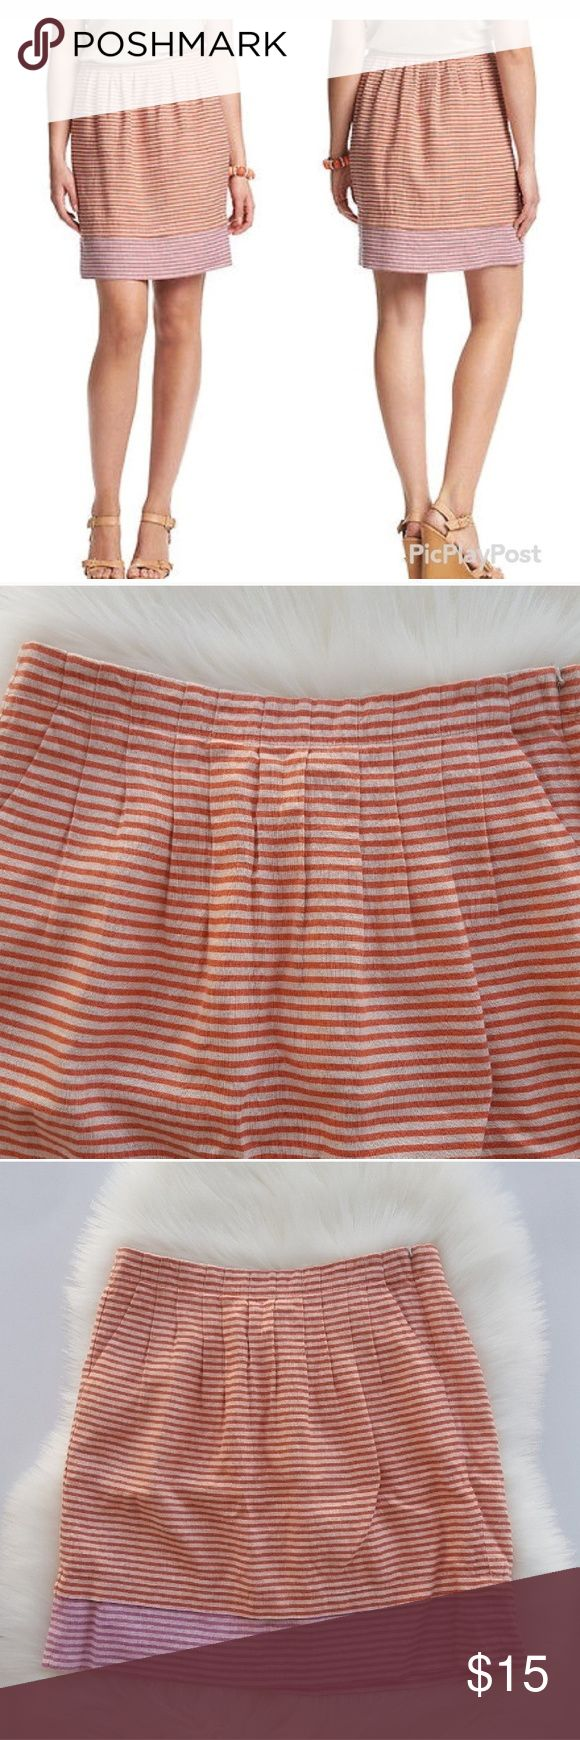 ANN TAYLOR LOFT Linen Orange Pink Striped Skirt ANN TAYLOR LOFT Linen Orange Pink Striped Skirt Has a concealed side zipper.  Pleated skirt. Would look great with a cardigan.  Has pockets. Striped skirt. Ann Taylor Loft skirt. LOFT Skirts Mini